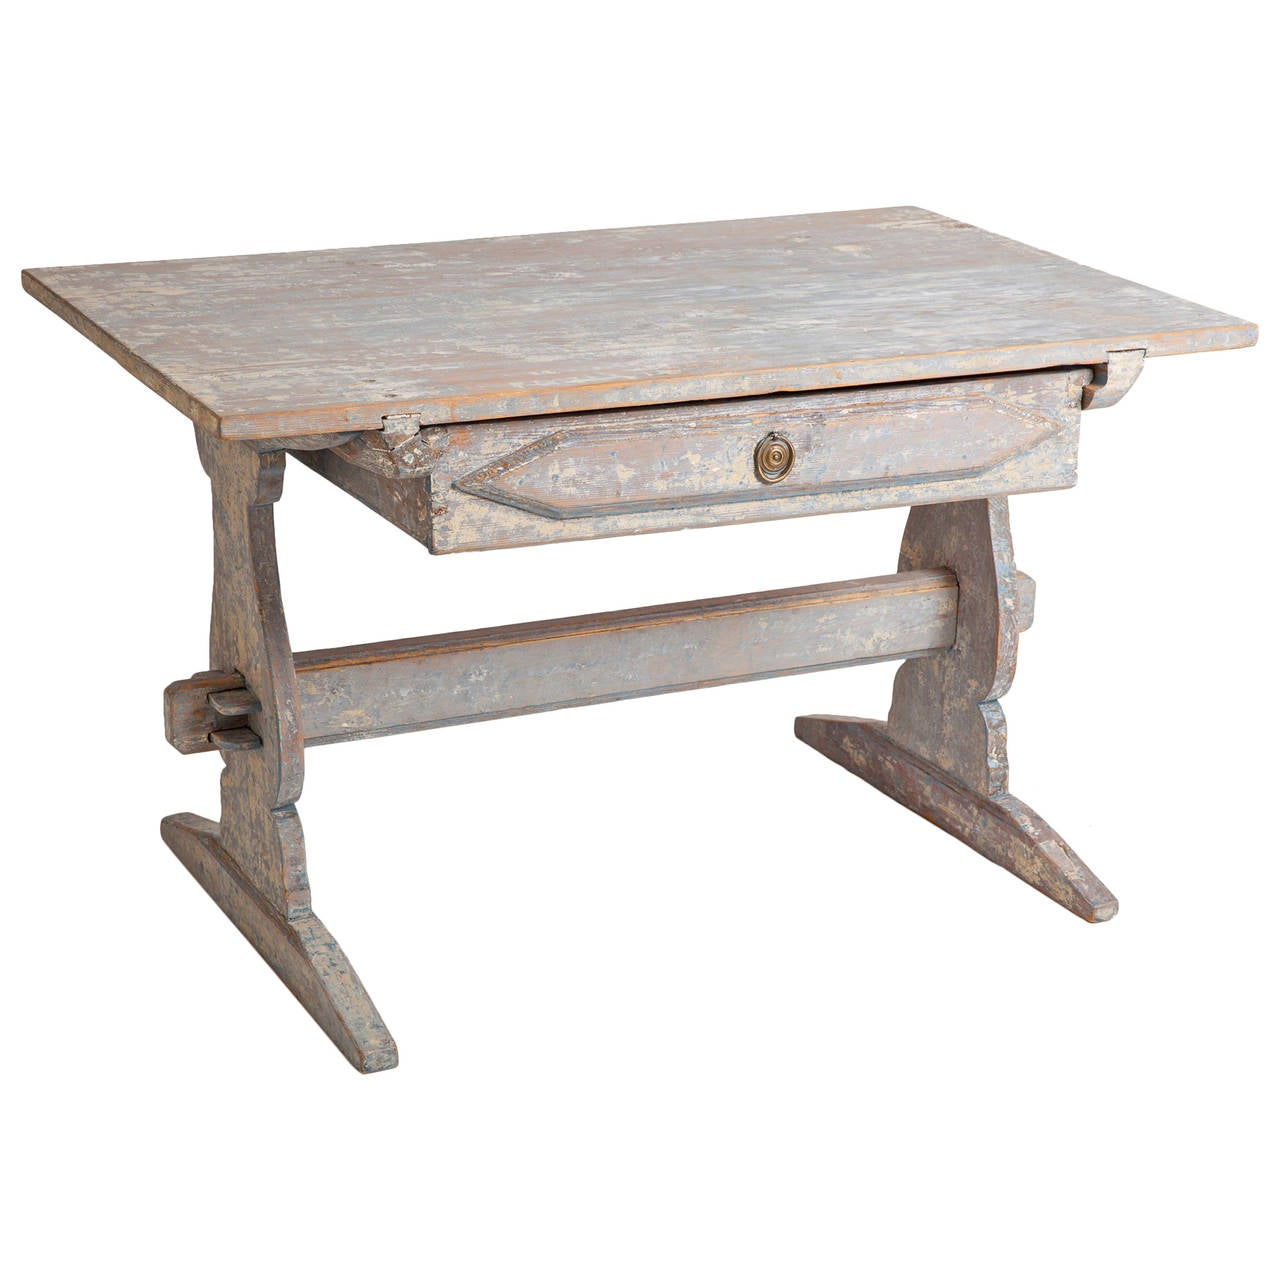 Swedish Antique Blue Painted Trestle Table, Circa 1880 1